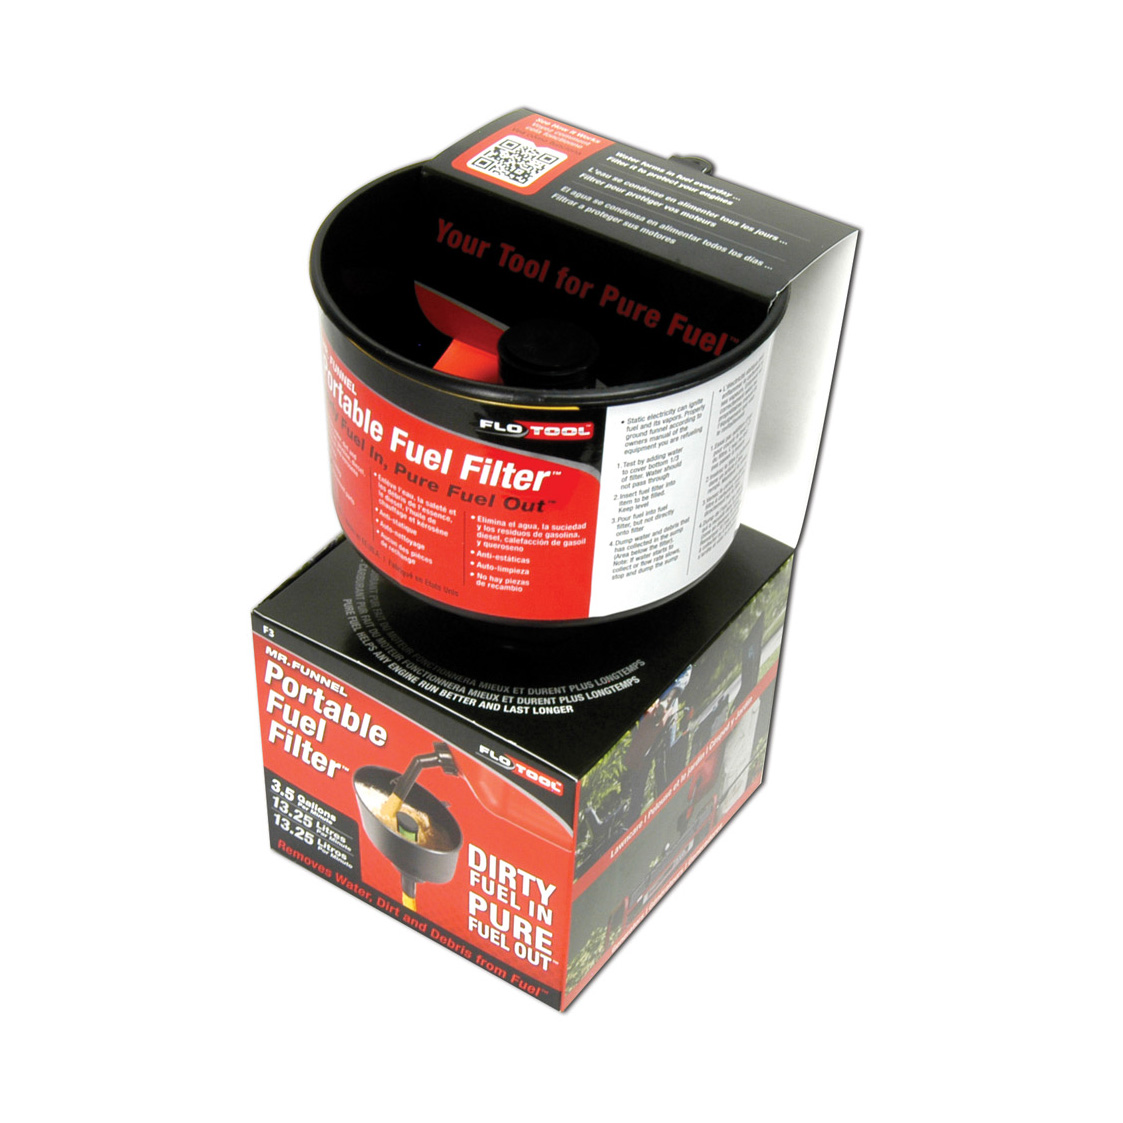 Buy Online Re Fuel Filters Diesel Mr Funnel F3 C Medium Conductive Filter Petrol Fuels